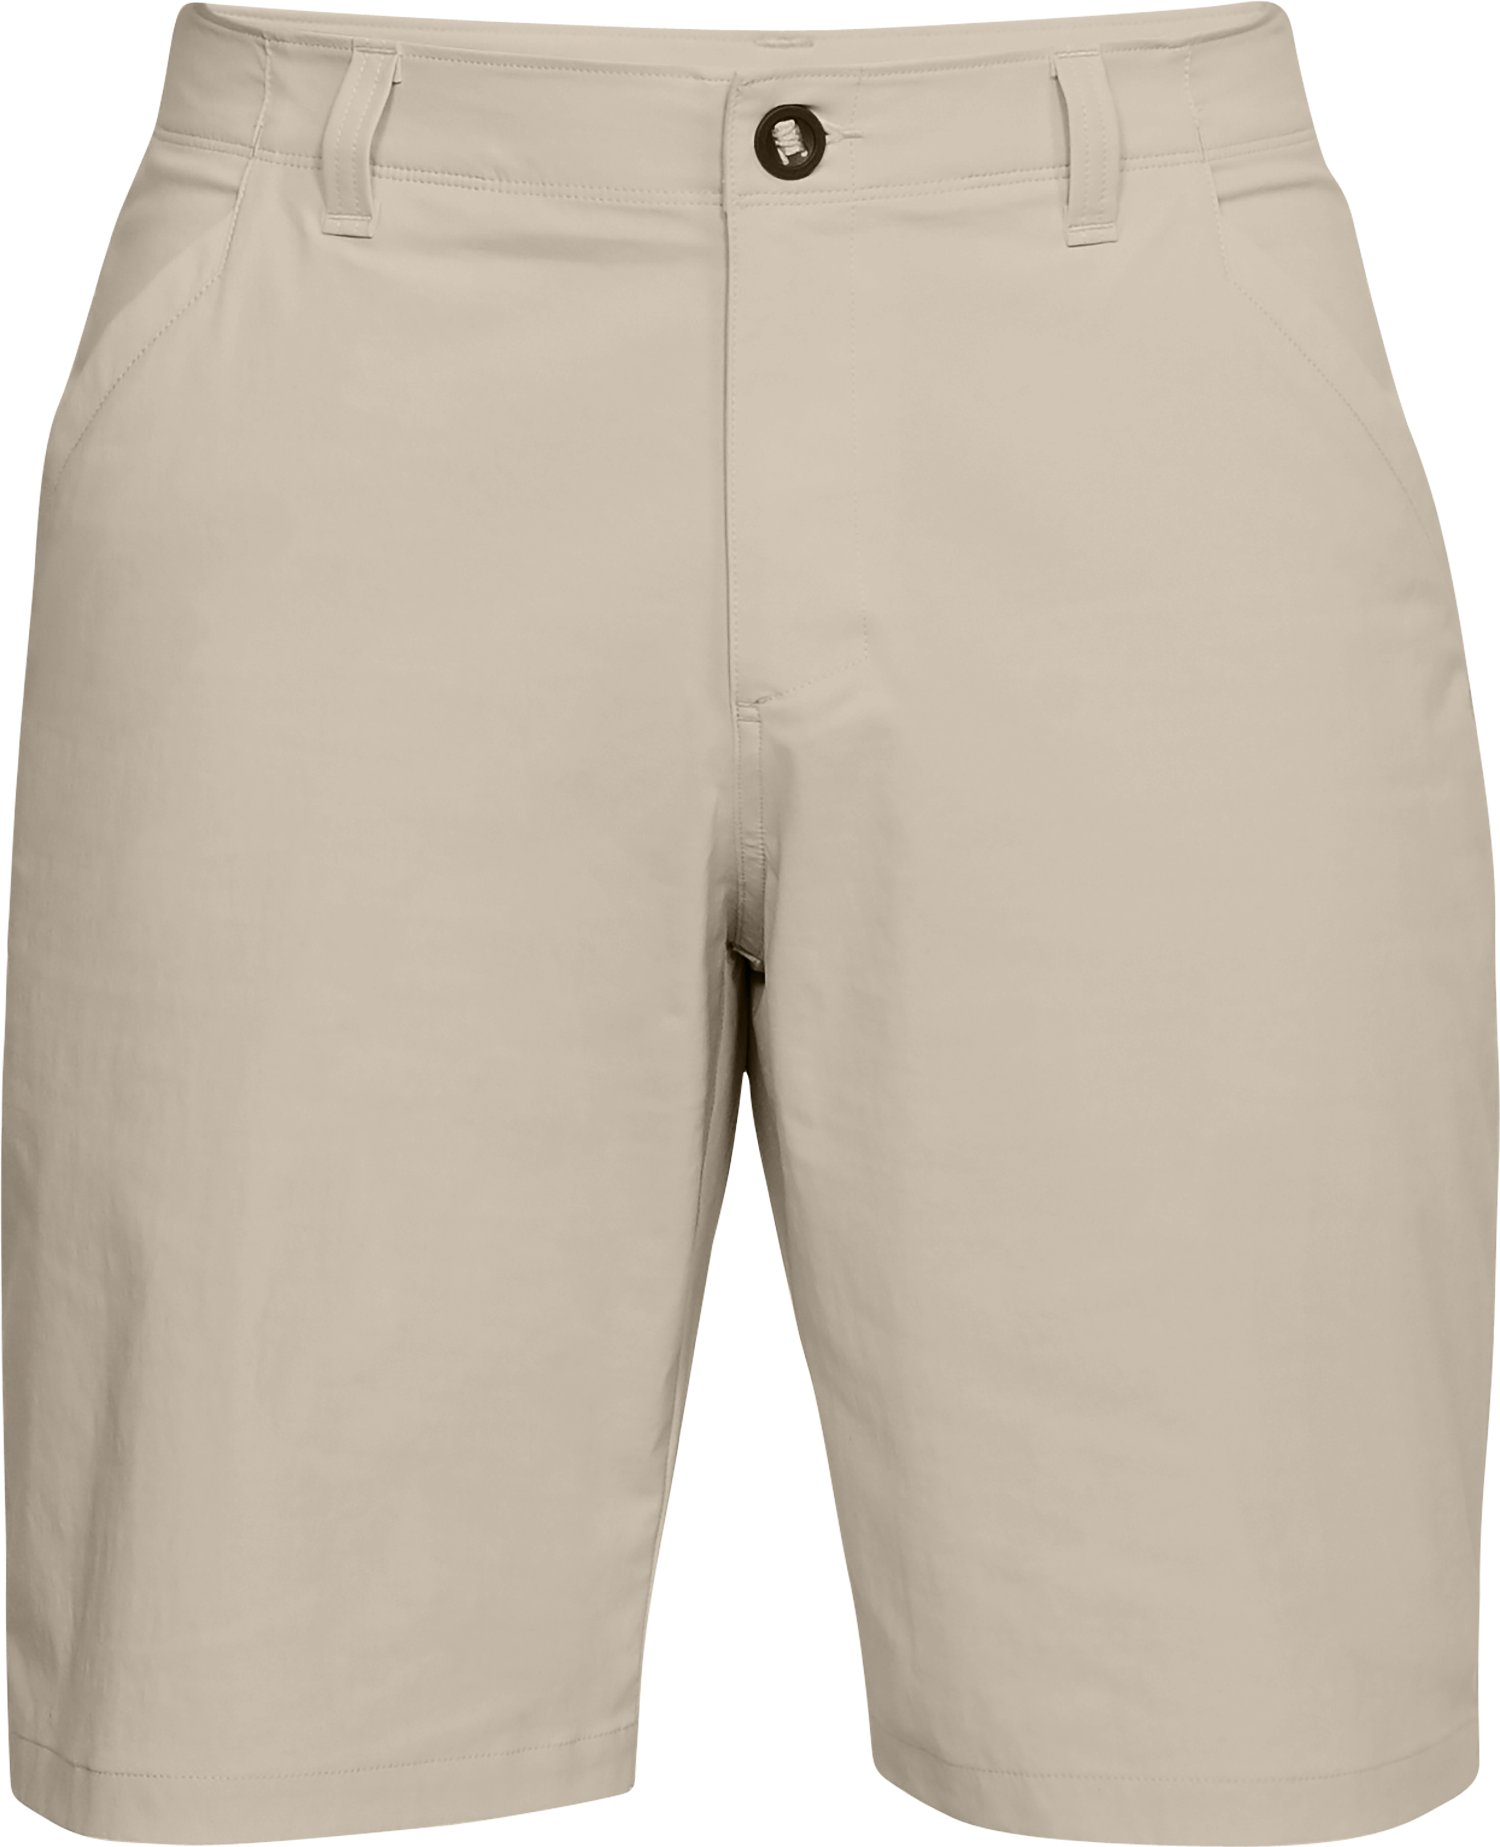 Men's UA Fish Hunter Shorts, Baja,